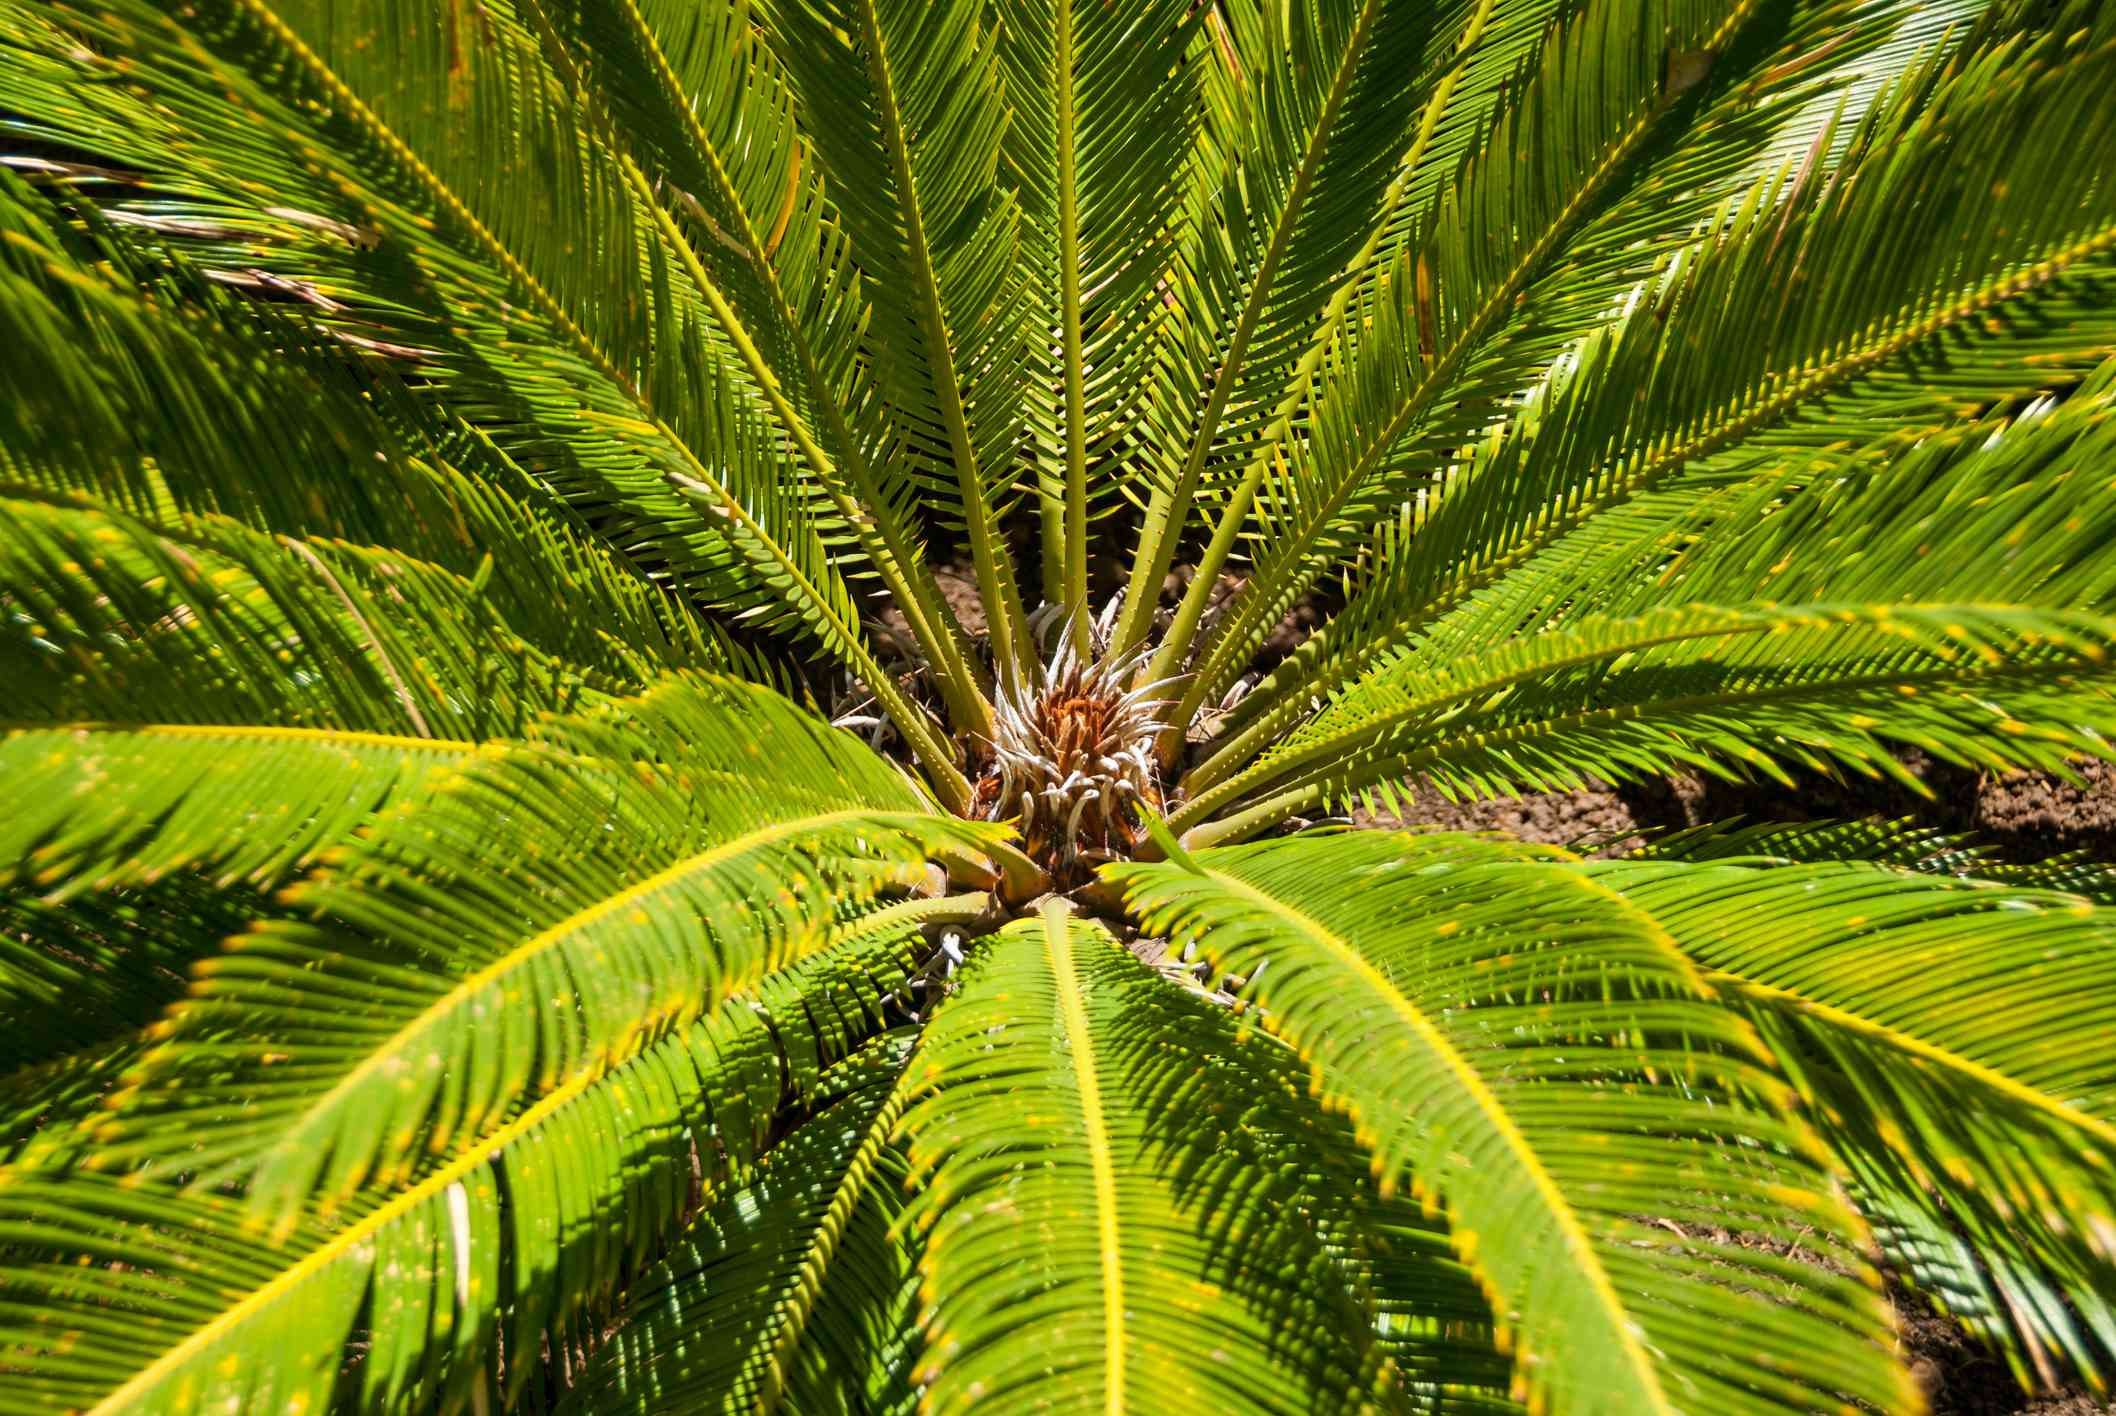 Close-up of a cycad plant, South Africa